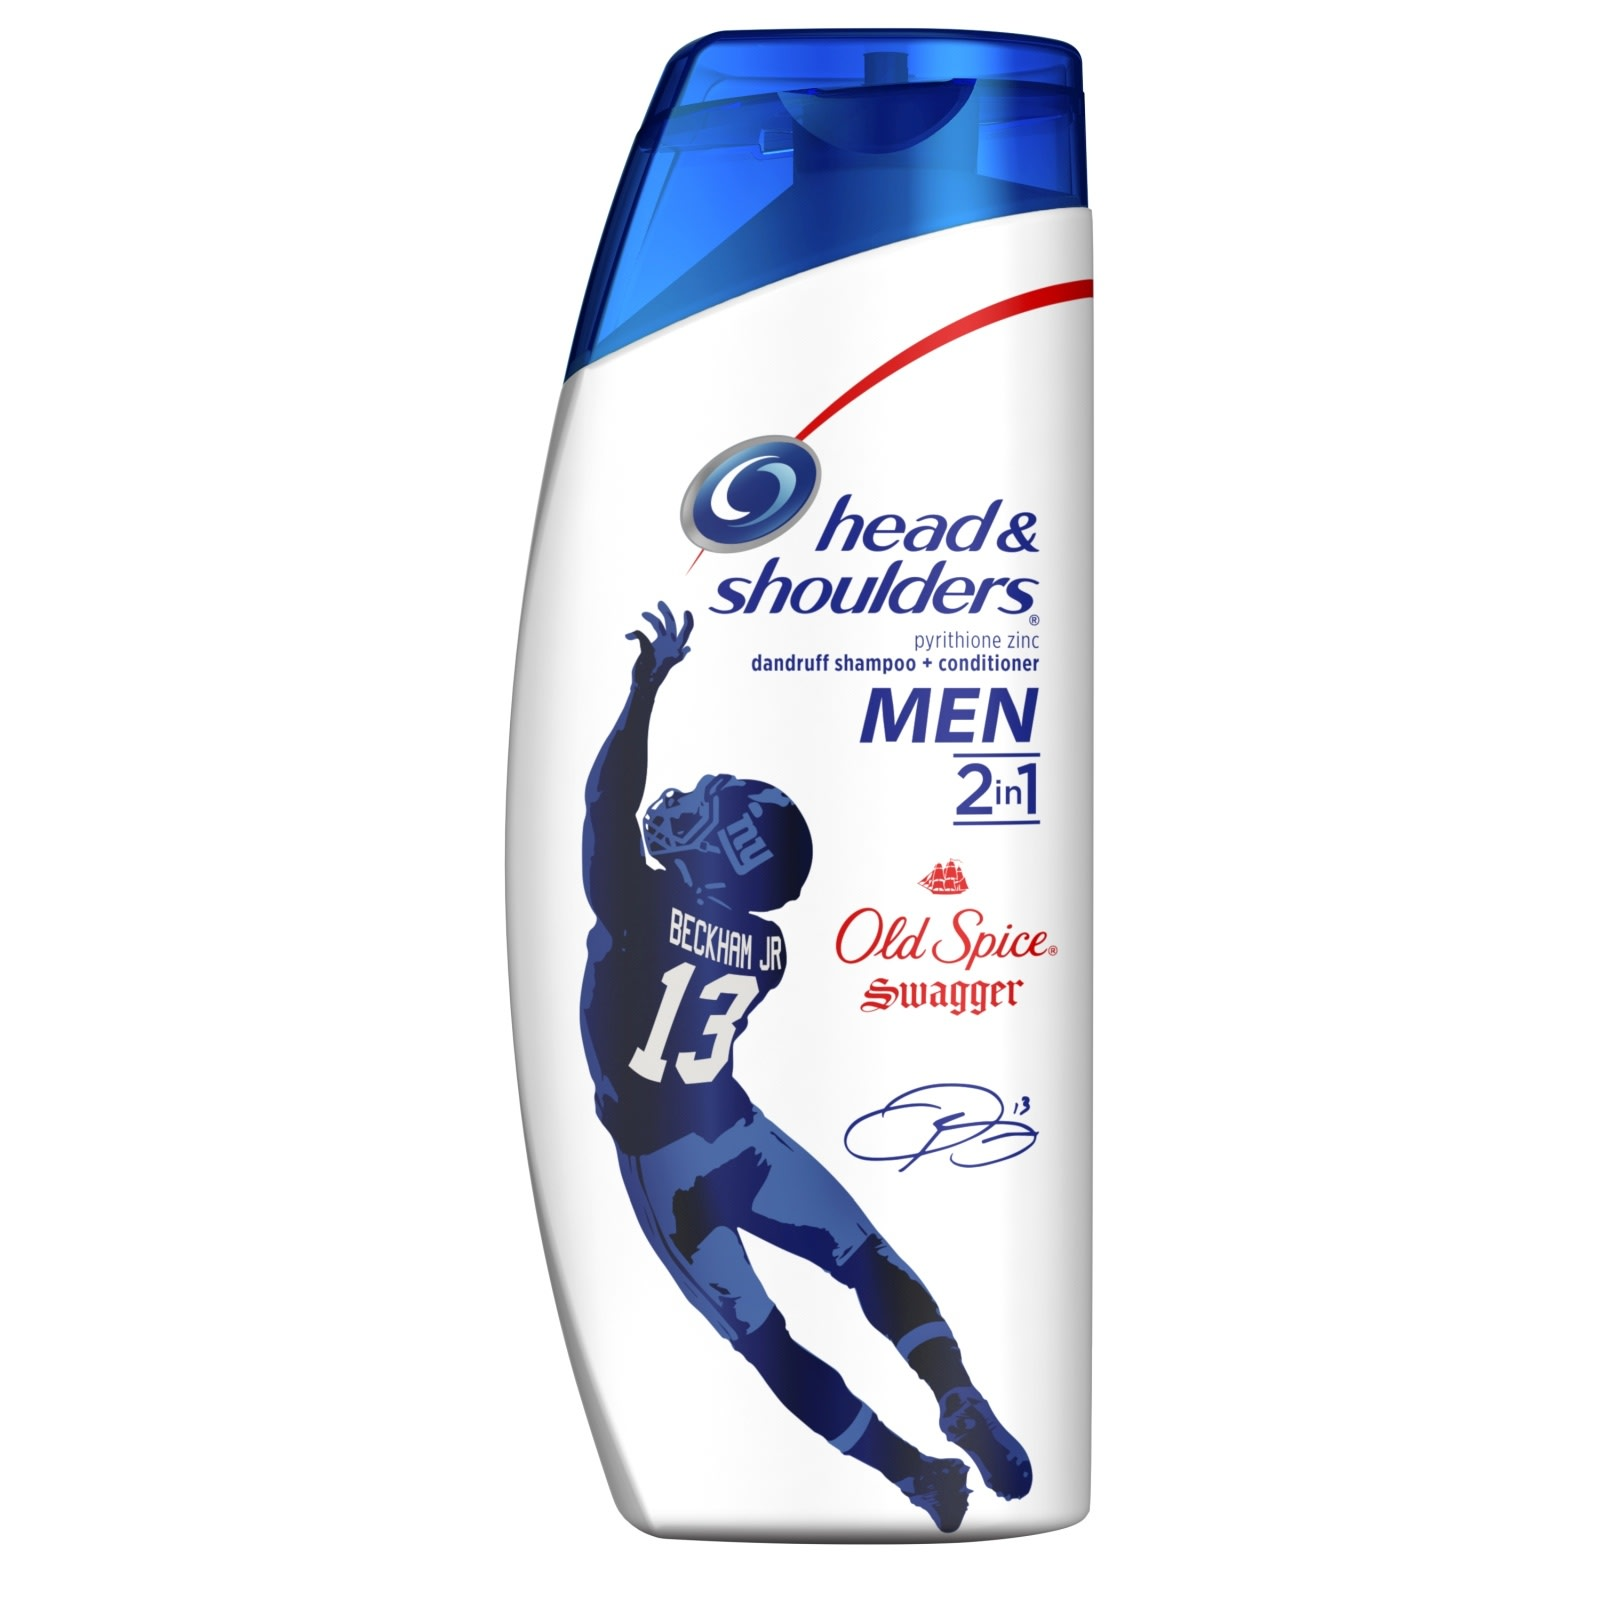 Old Spice Swagger 2-in-1